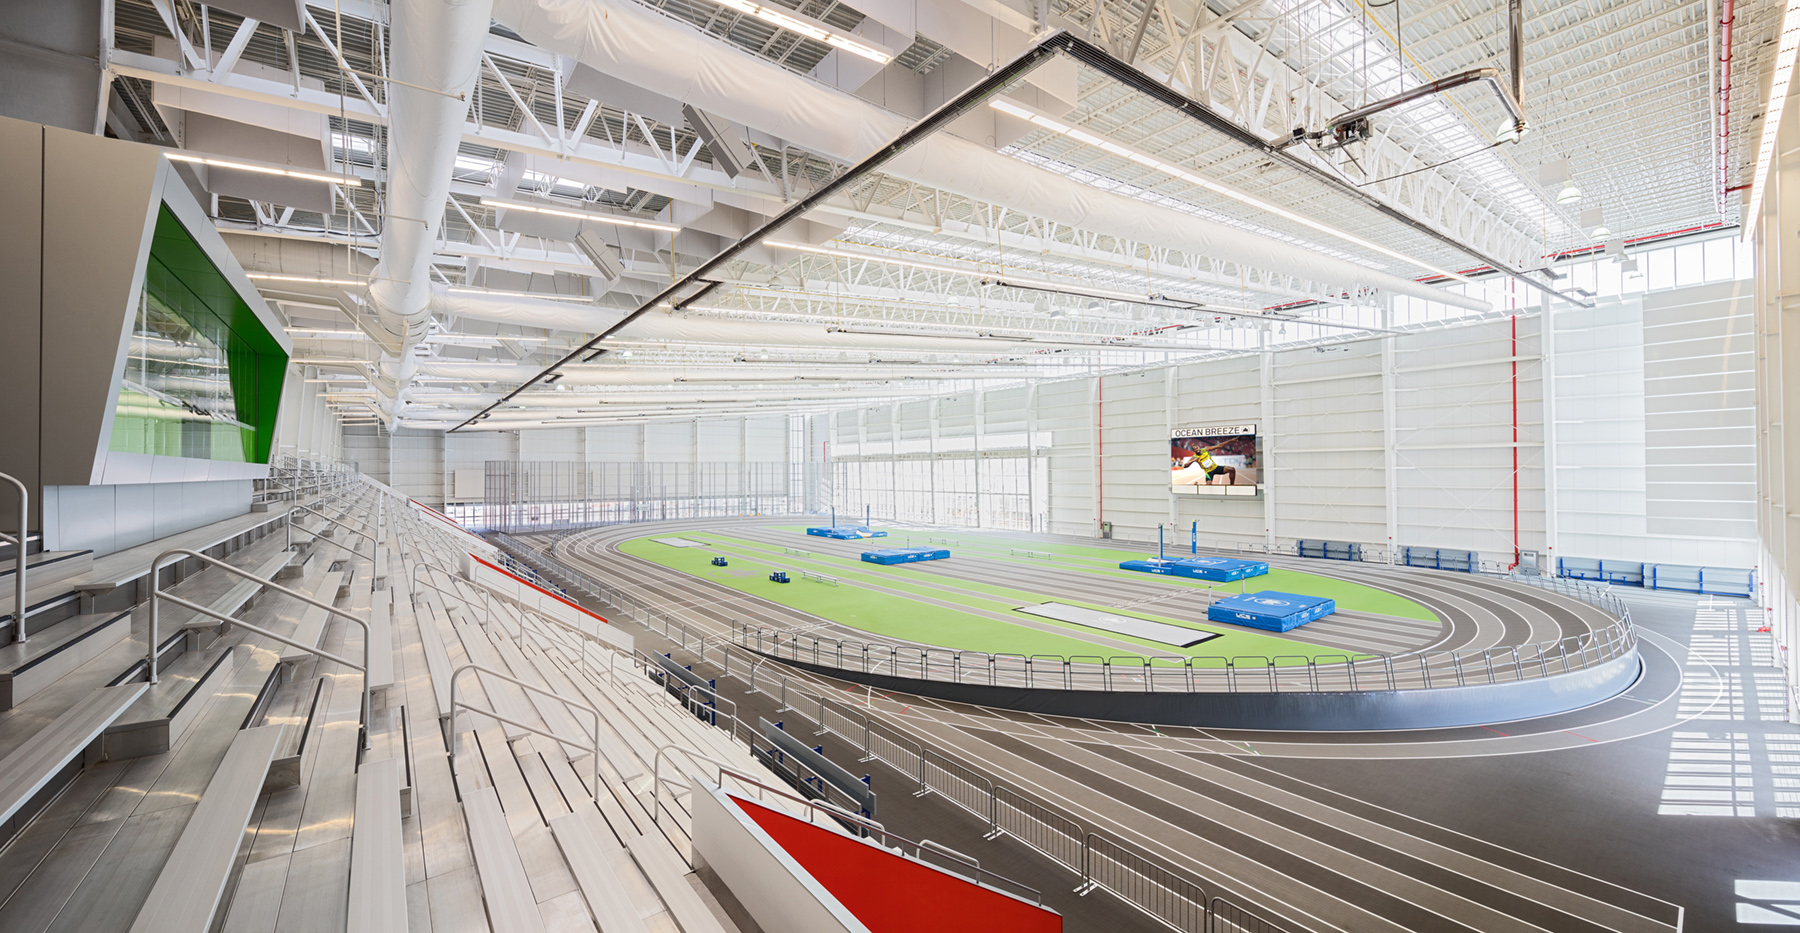 Ocean Breeze Athletic Complex